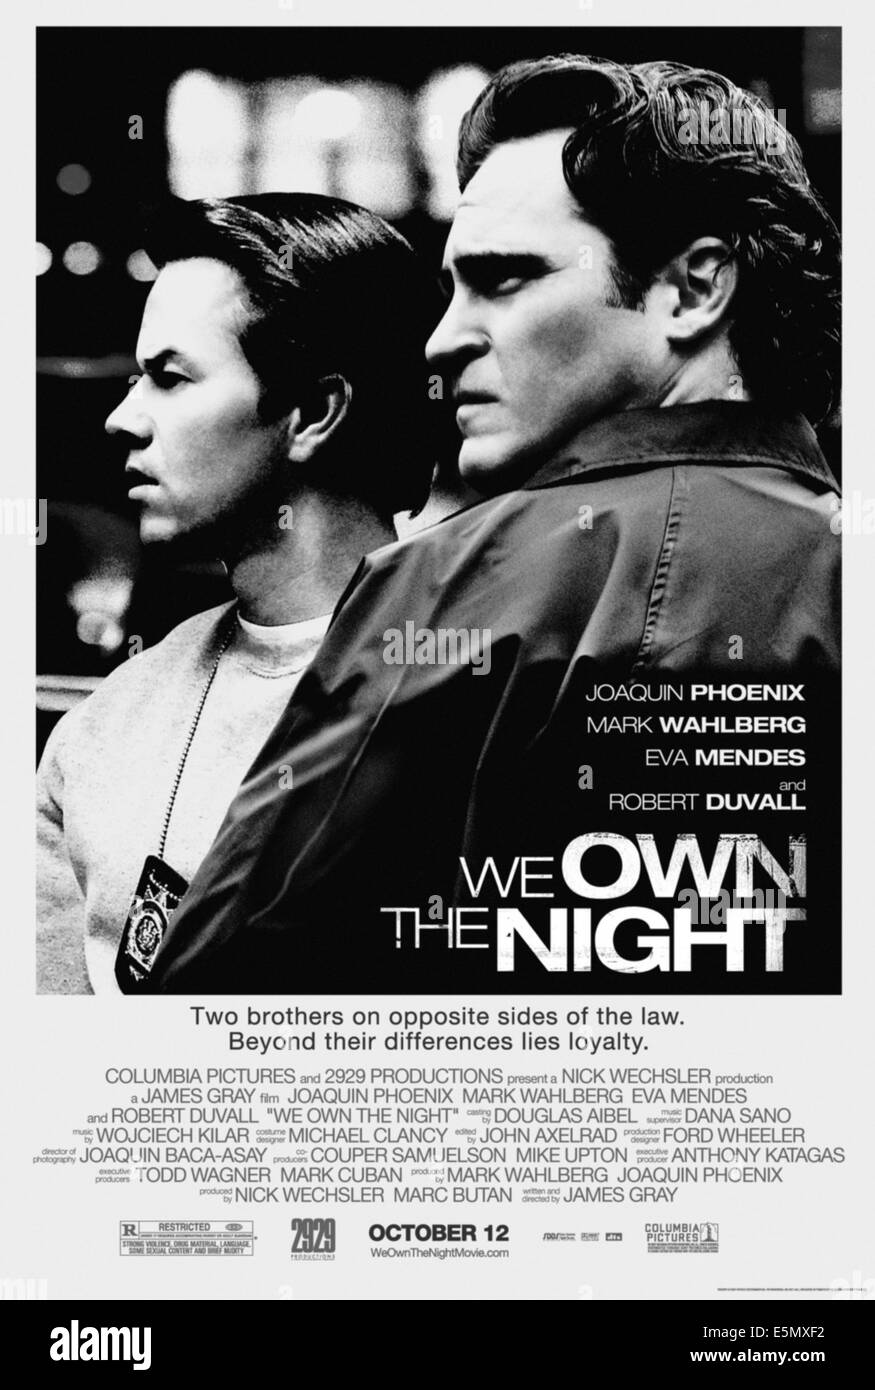 WE OWN THE NIGHT, Mark Wahlberg, Joaquin Phoenix, 2007. ©Columbia Pictures/Courtesy Everett Collection - Stock Image